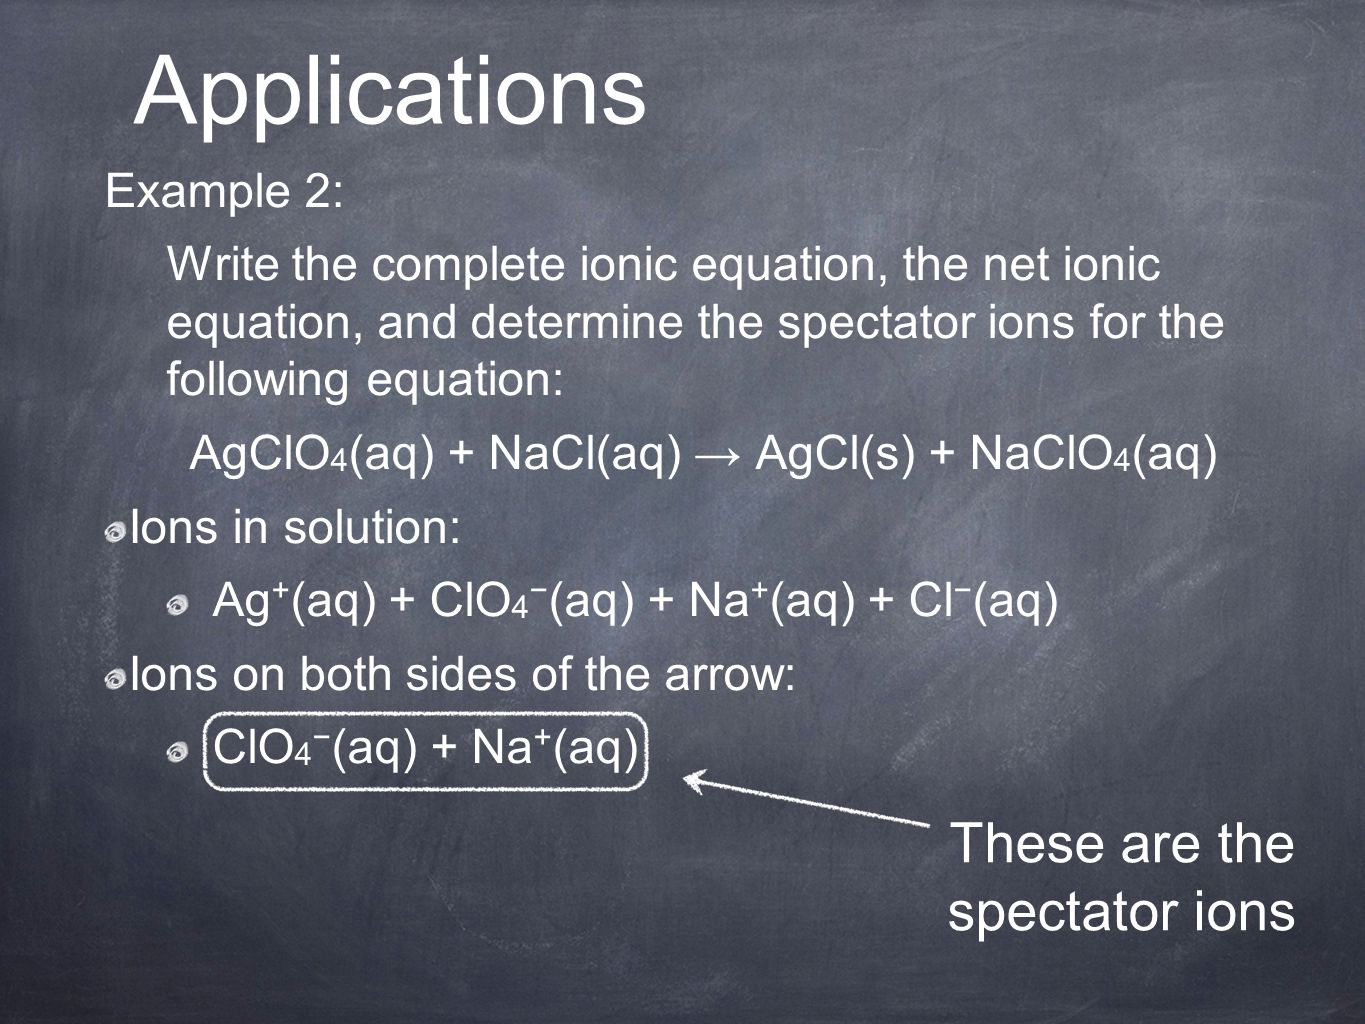 Example 2: Write the complete ionic equation, the net ionic equation, and determine the spectator ions for the following equation: AgClO 4 (aq) + NaCl(aq) → AgCl(s) + NaClO 4 (aq) Ions in solution: Ag + (aq) + ClO 4 − (aq) + Na + (aq) + Cl − (aq) Ions on both sides of the arrow: ClO 4 − (aq) + Na + (aq) Applications These are the spectator ions